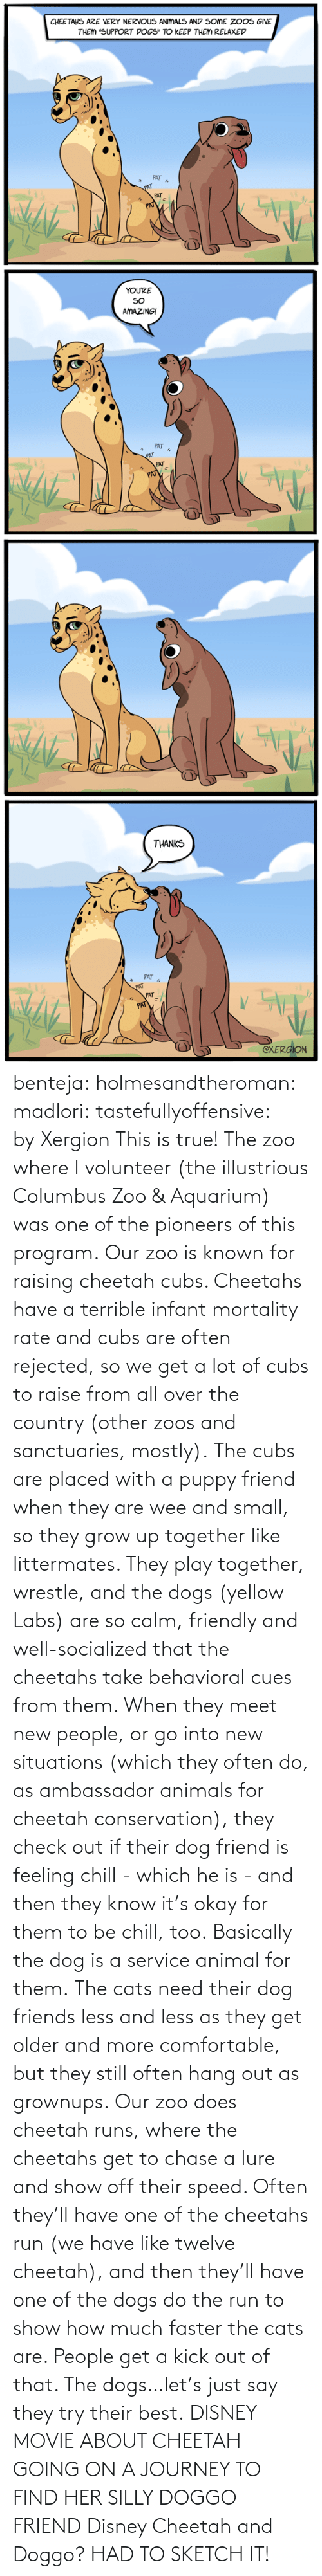 Disney: benteja:  holmesandtheroman:  madlori:  tastefullyoffensive: by Xergion This is true! The zoo where I volunteer (the illustrious Columbus Zoo & Aquarium) was one of the pioneers of this program. Our zoo is known for raising cheetah cubs. Cheetahs have a terrible infant mortality rate and cubs are often rejected, so we get a lot of cubs to raise from all over the country (other zoos and sanctuaries, mostly). The cubs are placed with a puppy friend when they are wee and small, so they grow up together like littermates. They play together, wrestle, and the dogs (yellow Labs) are so calm, friendly and well-socialized that the cheetahs take behavioral cues from them. When they meet new people, or go into new situations (which they often do, as ambassador animals for cheetah conservation), they check out if their dog friend is feeling chill - which he is - and then they know it's okay for them to be chill, too. Basically the dog is a service animal for them. The cats need their dog friends less and less as they get older and more comfortable, but they still often hang out as grownups. Our zoo does cheetah runs, where the cheetahs get to chase a lure and show off their speed. Often they'll have one of the cheetahs run (we have like twelve cheetah), and then they'll have one of the dogs do the run to show how much faster the cats are. People get a kick out of that. The dogs…let's just say they try their best.   DISNEY MOVIE ABOUT CHEETAH GOING ON A JOURNEY TO FIND HER SILLY DOGGO FRIEND  Disney Cheetah and Doggo? HAD TO SKETCH IT!